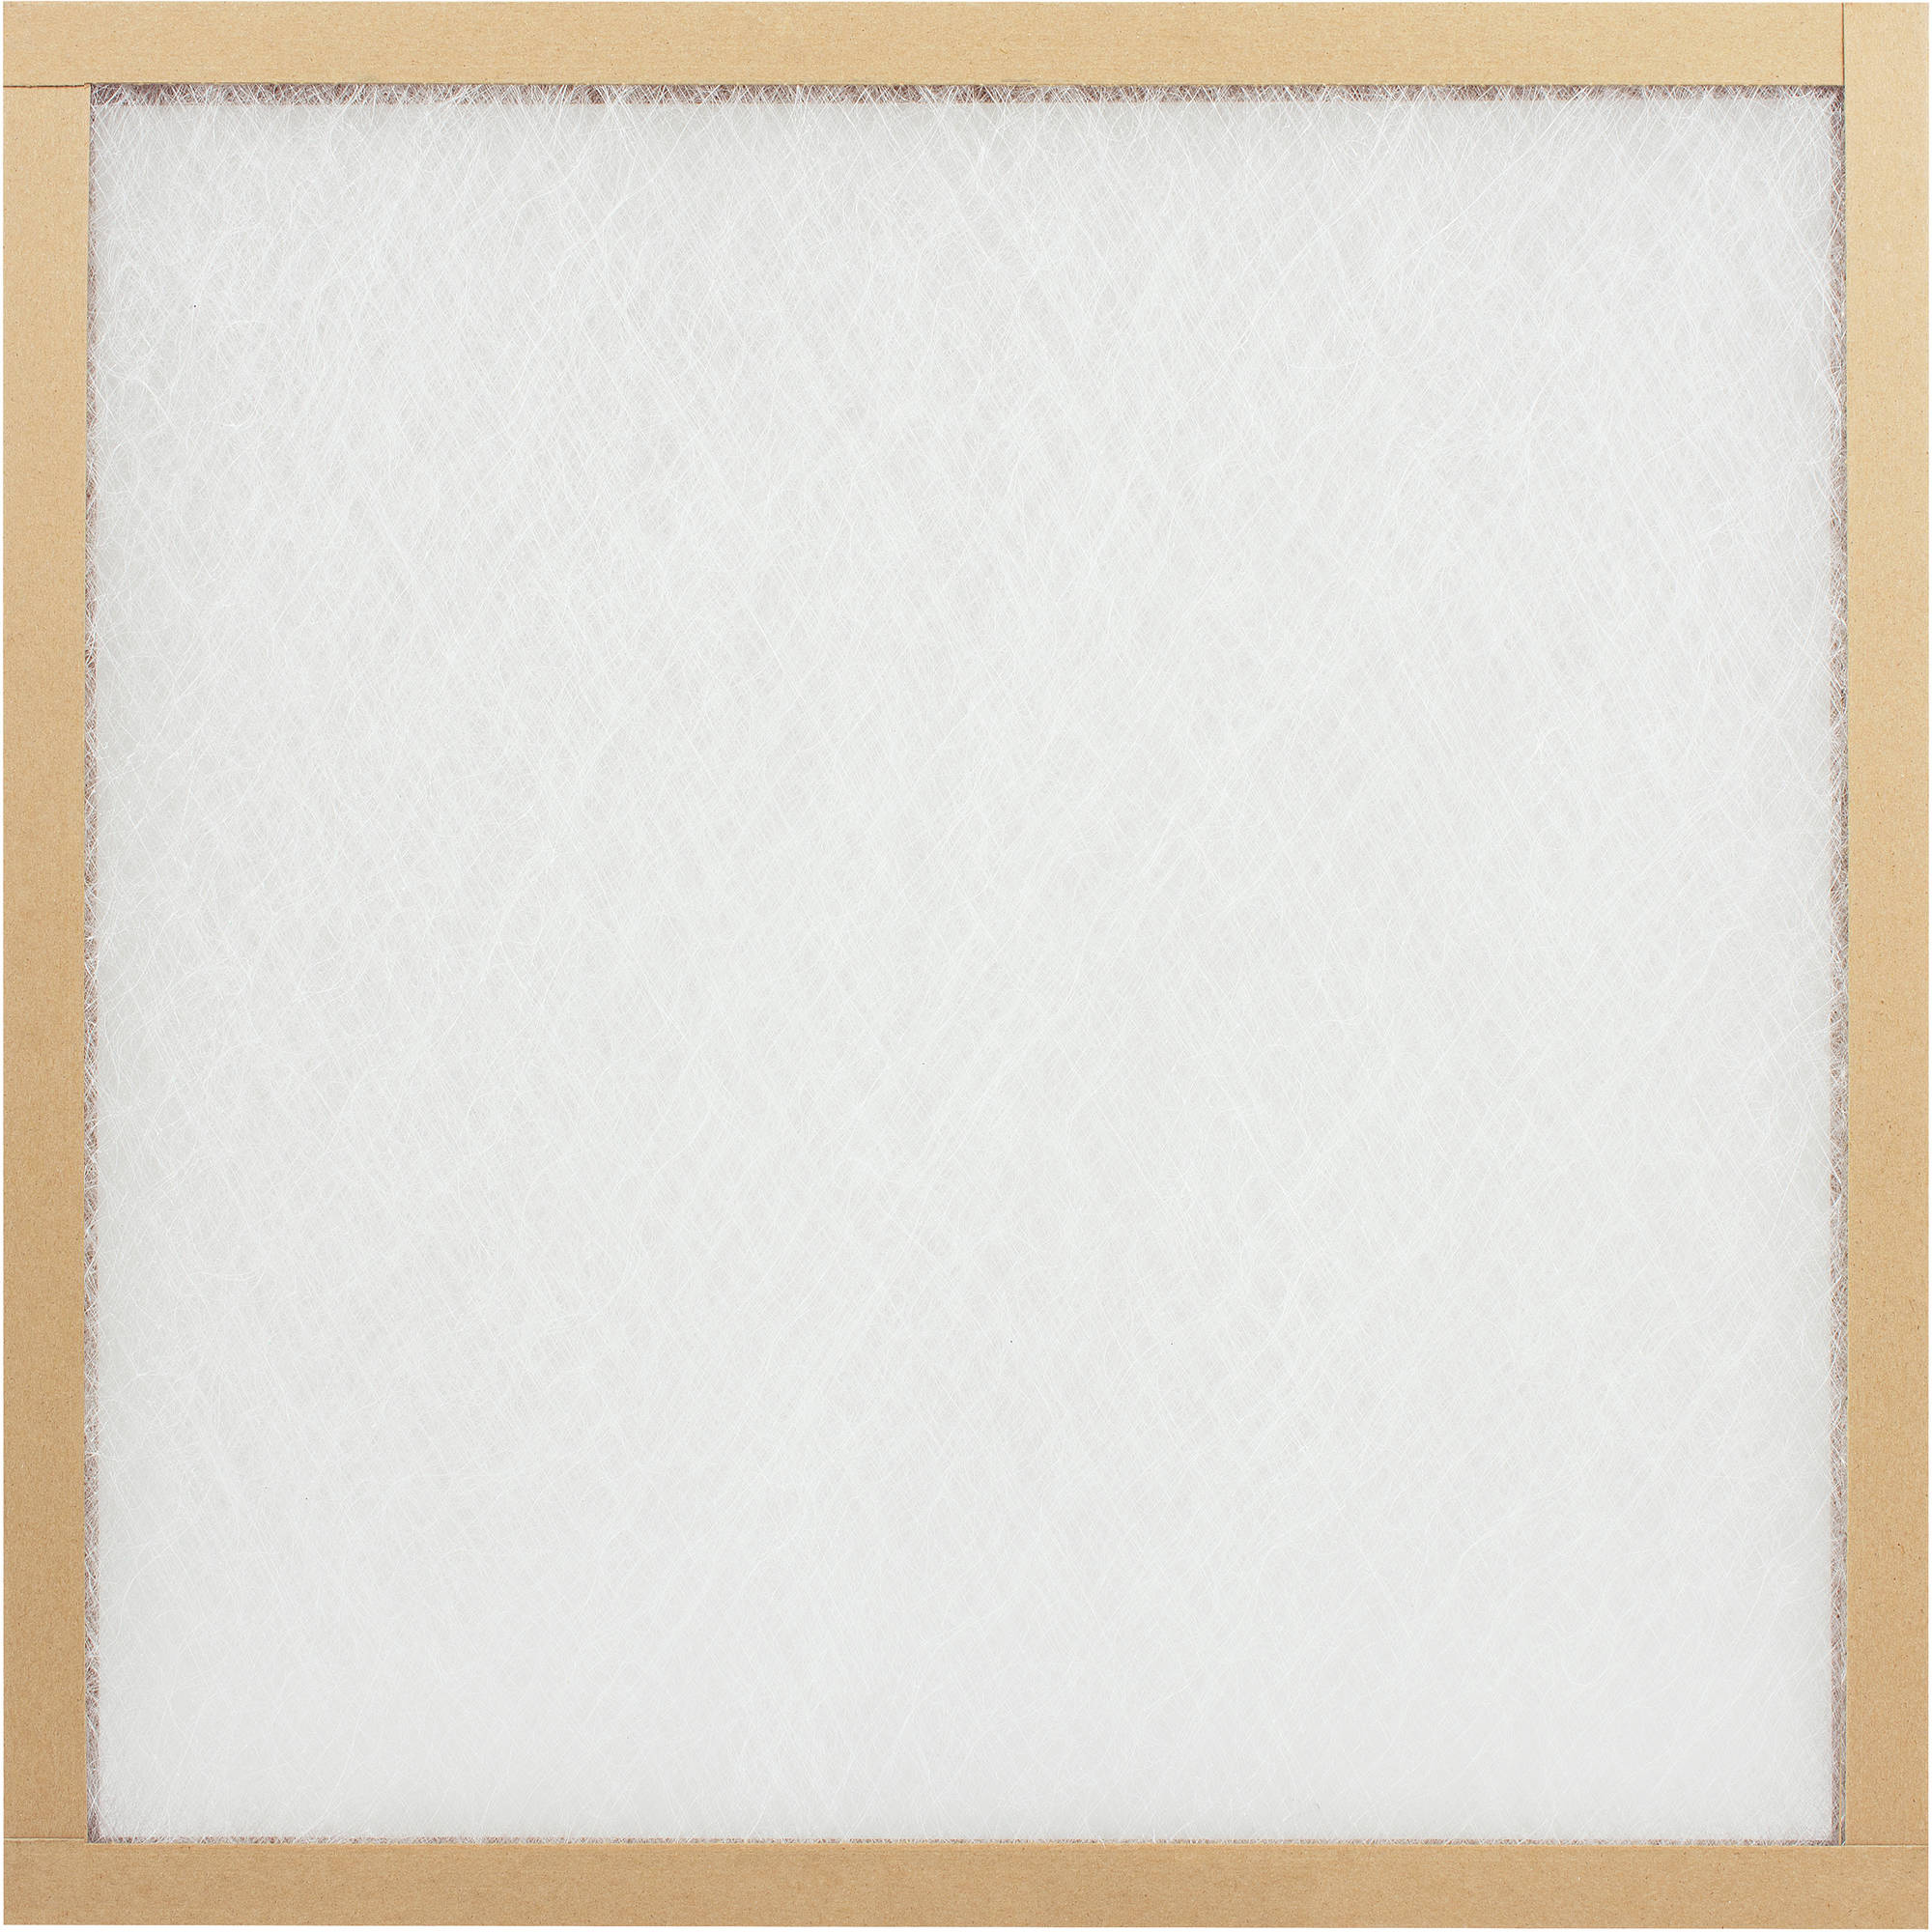 24X24X1 Fbg Furn Filter, Pack of 12 by Generic